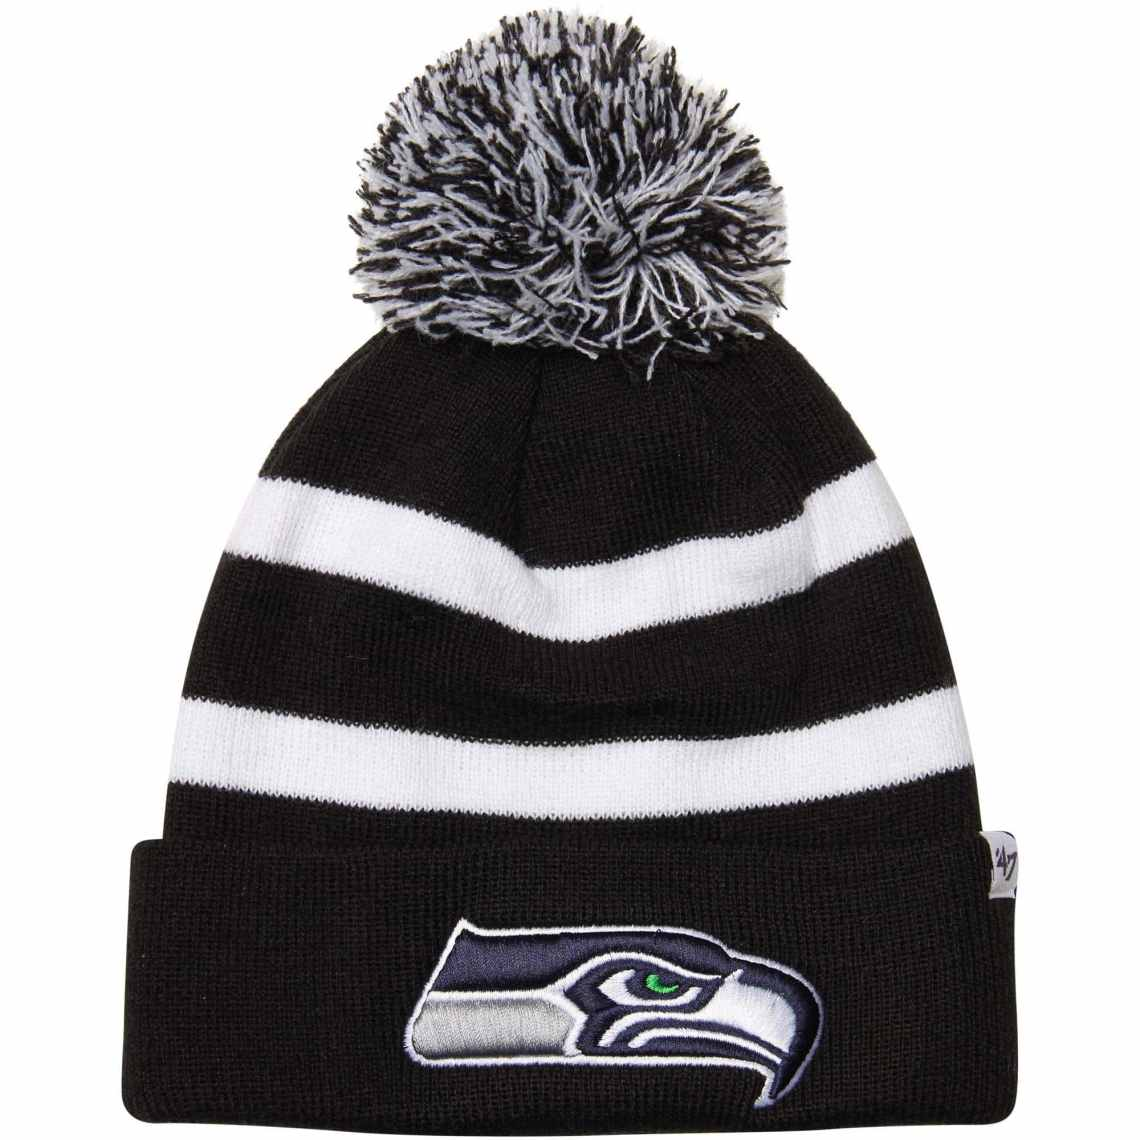 '47 Brand Seattle Seahawks Breakaway Domestic Cuffed Knit Hat with Pom - Black/White